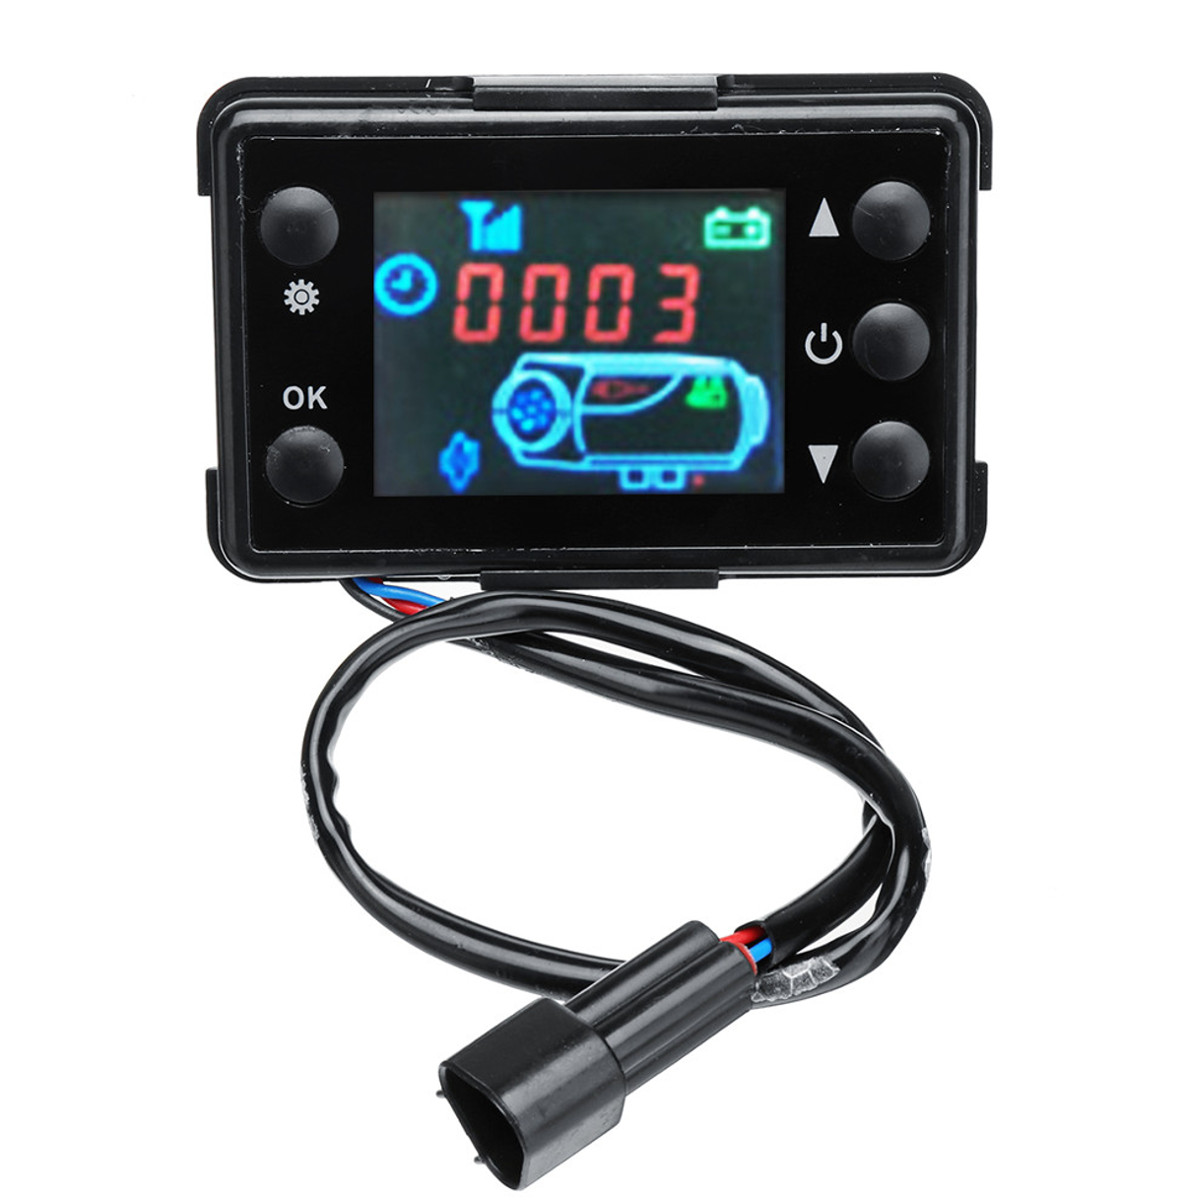 Controllers Hospitable 12v/24v 3/5kw Lcd Monitor Parking Heater Switch Car Heating Device Controller Universal For Car Track Air Heater